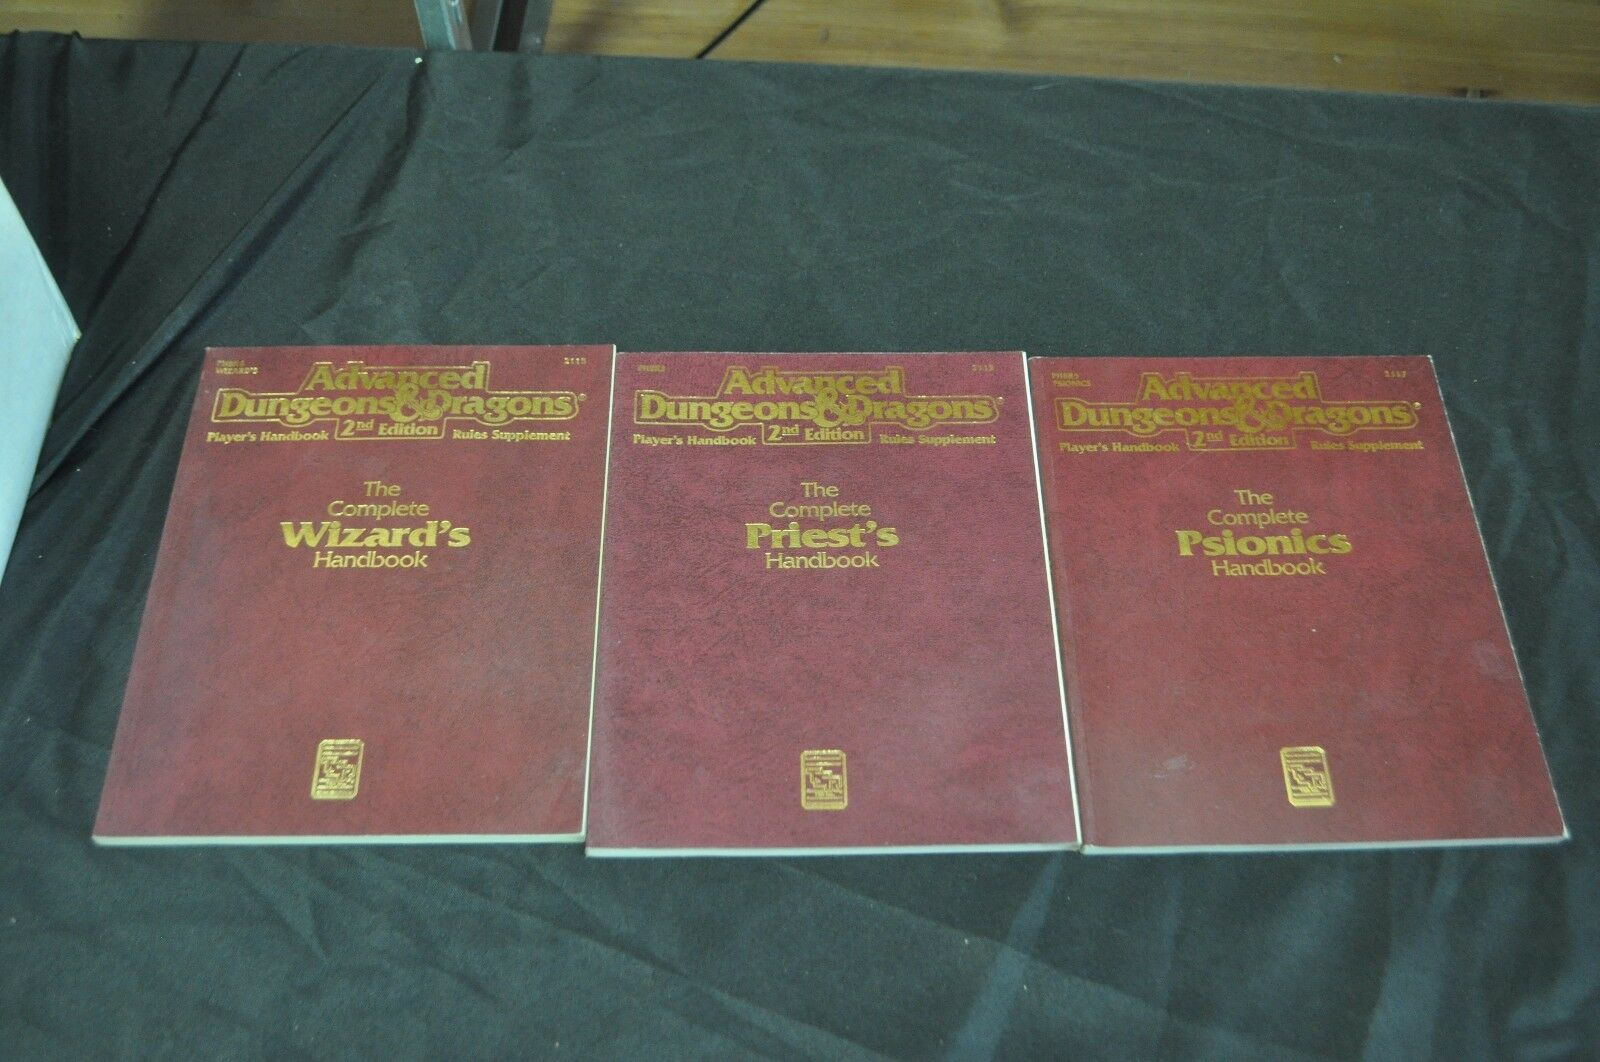 ADVANCED DUNGEONS AND DRAGONS SECOND EDITION HARDCOVER X3 RULES SUPPLESieT PICS